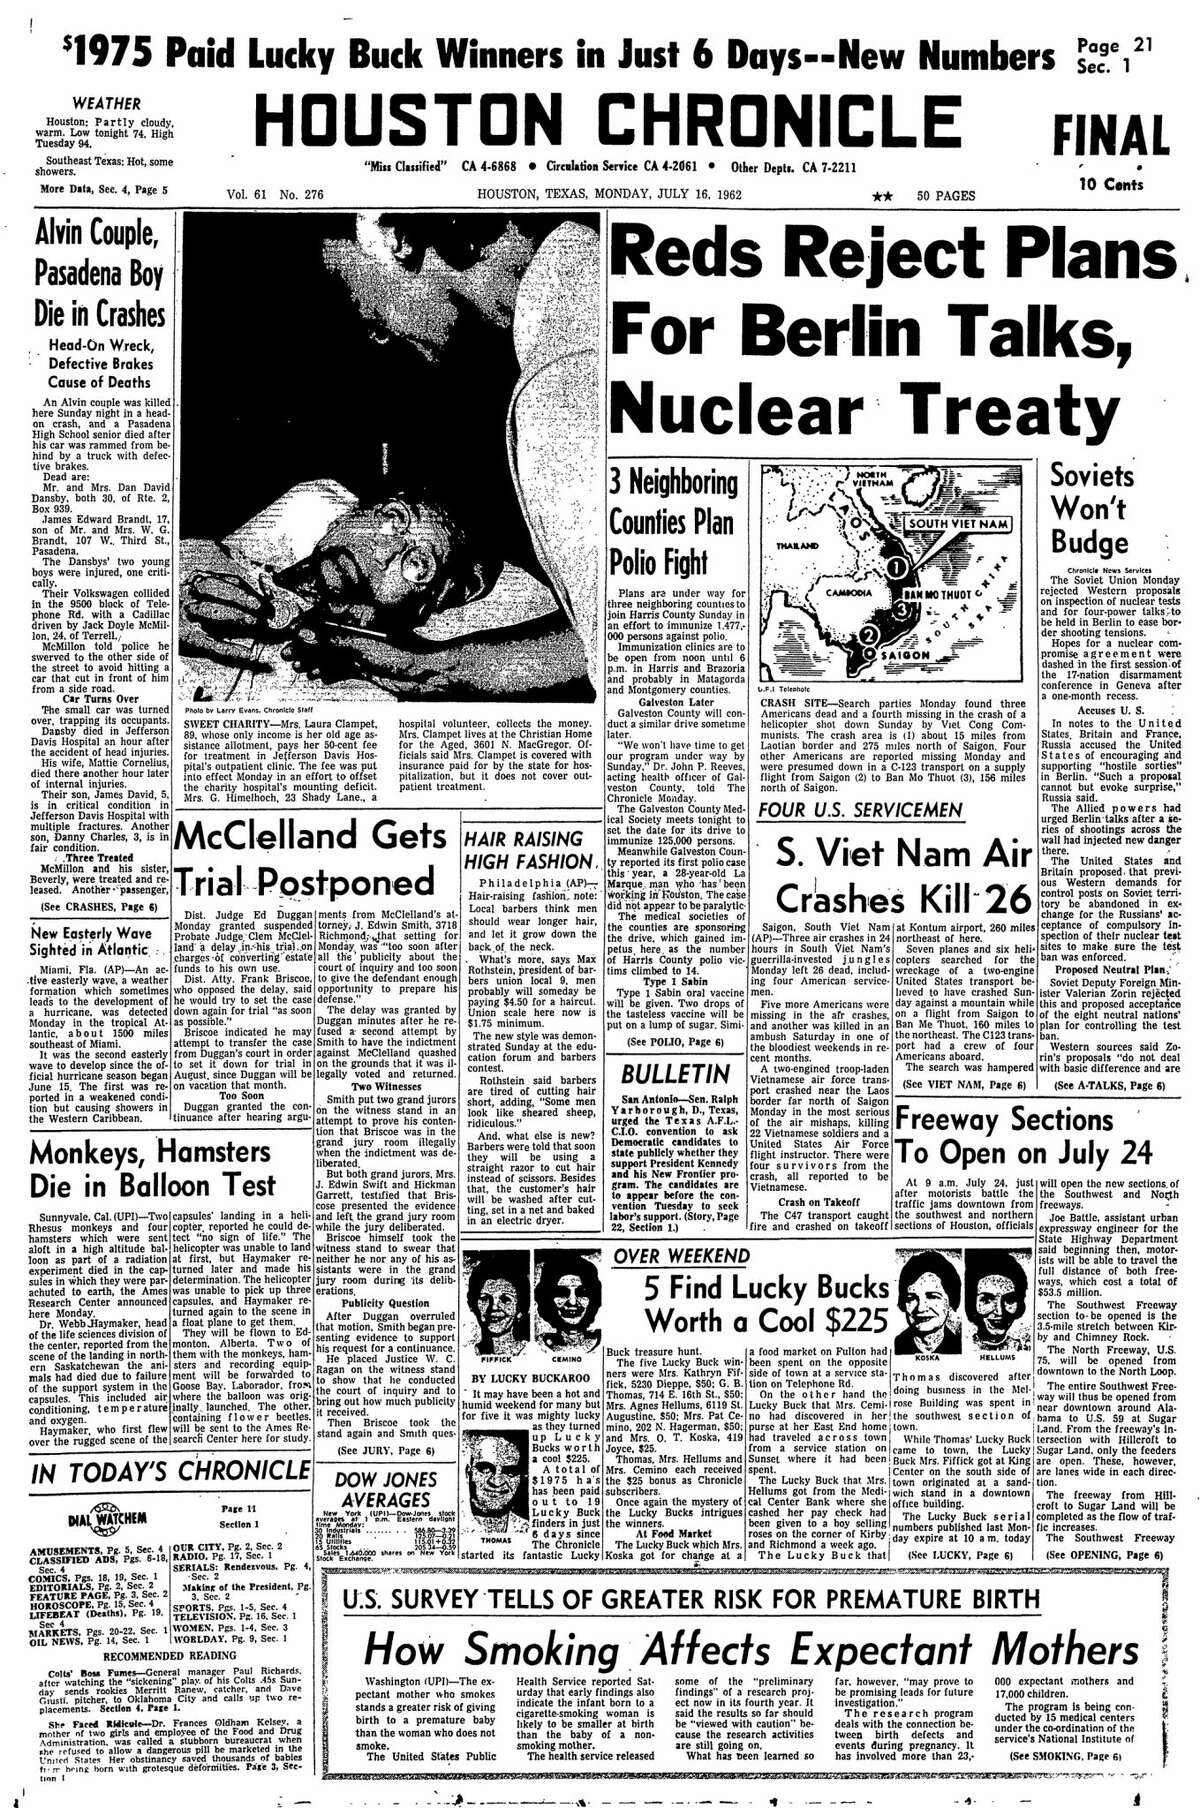 Houston Chronicle front page for July 16, 1962.